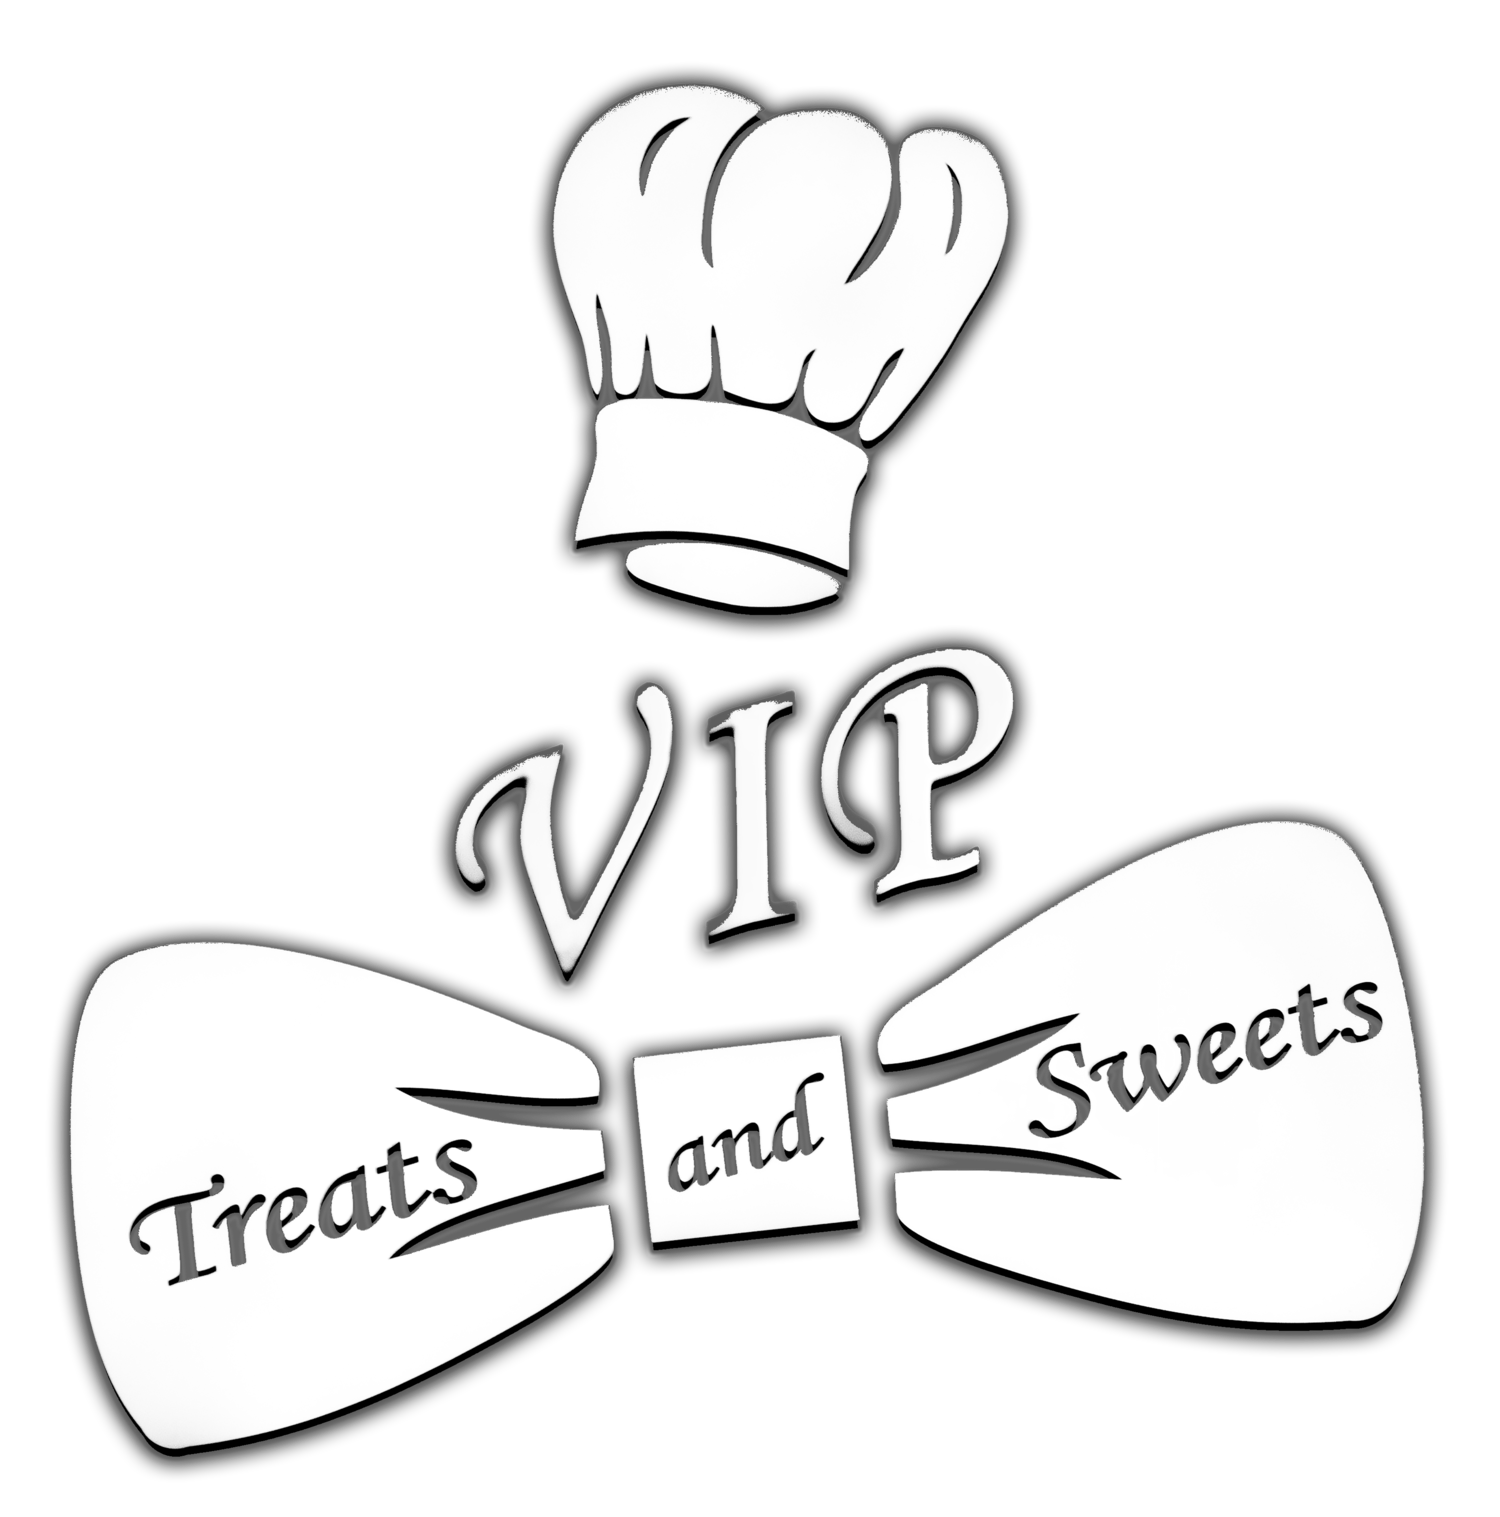 VIP Treats & Sweets